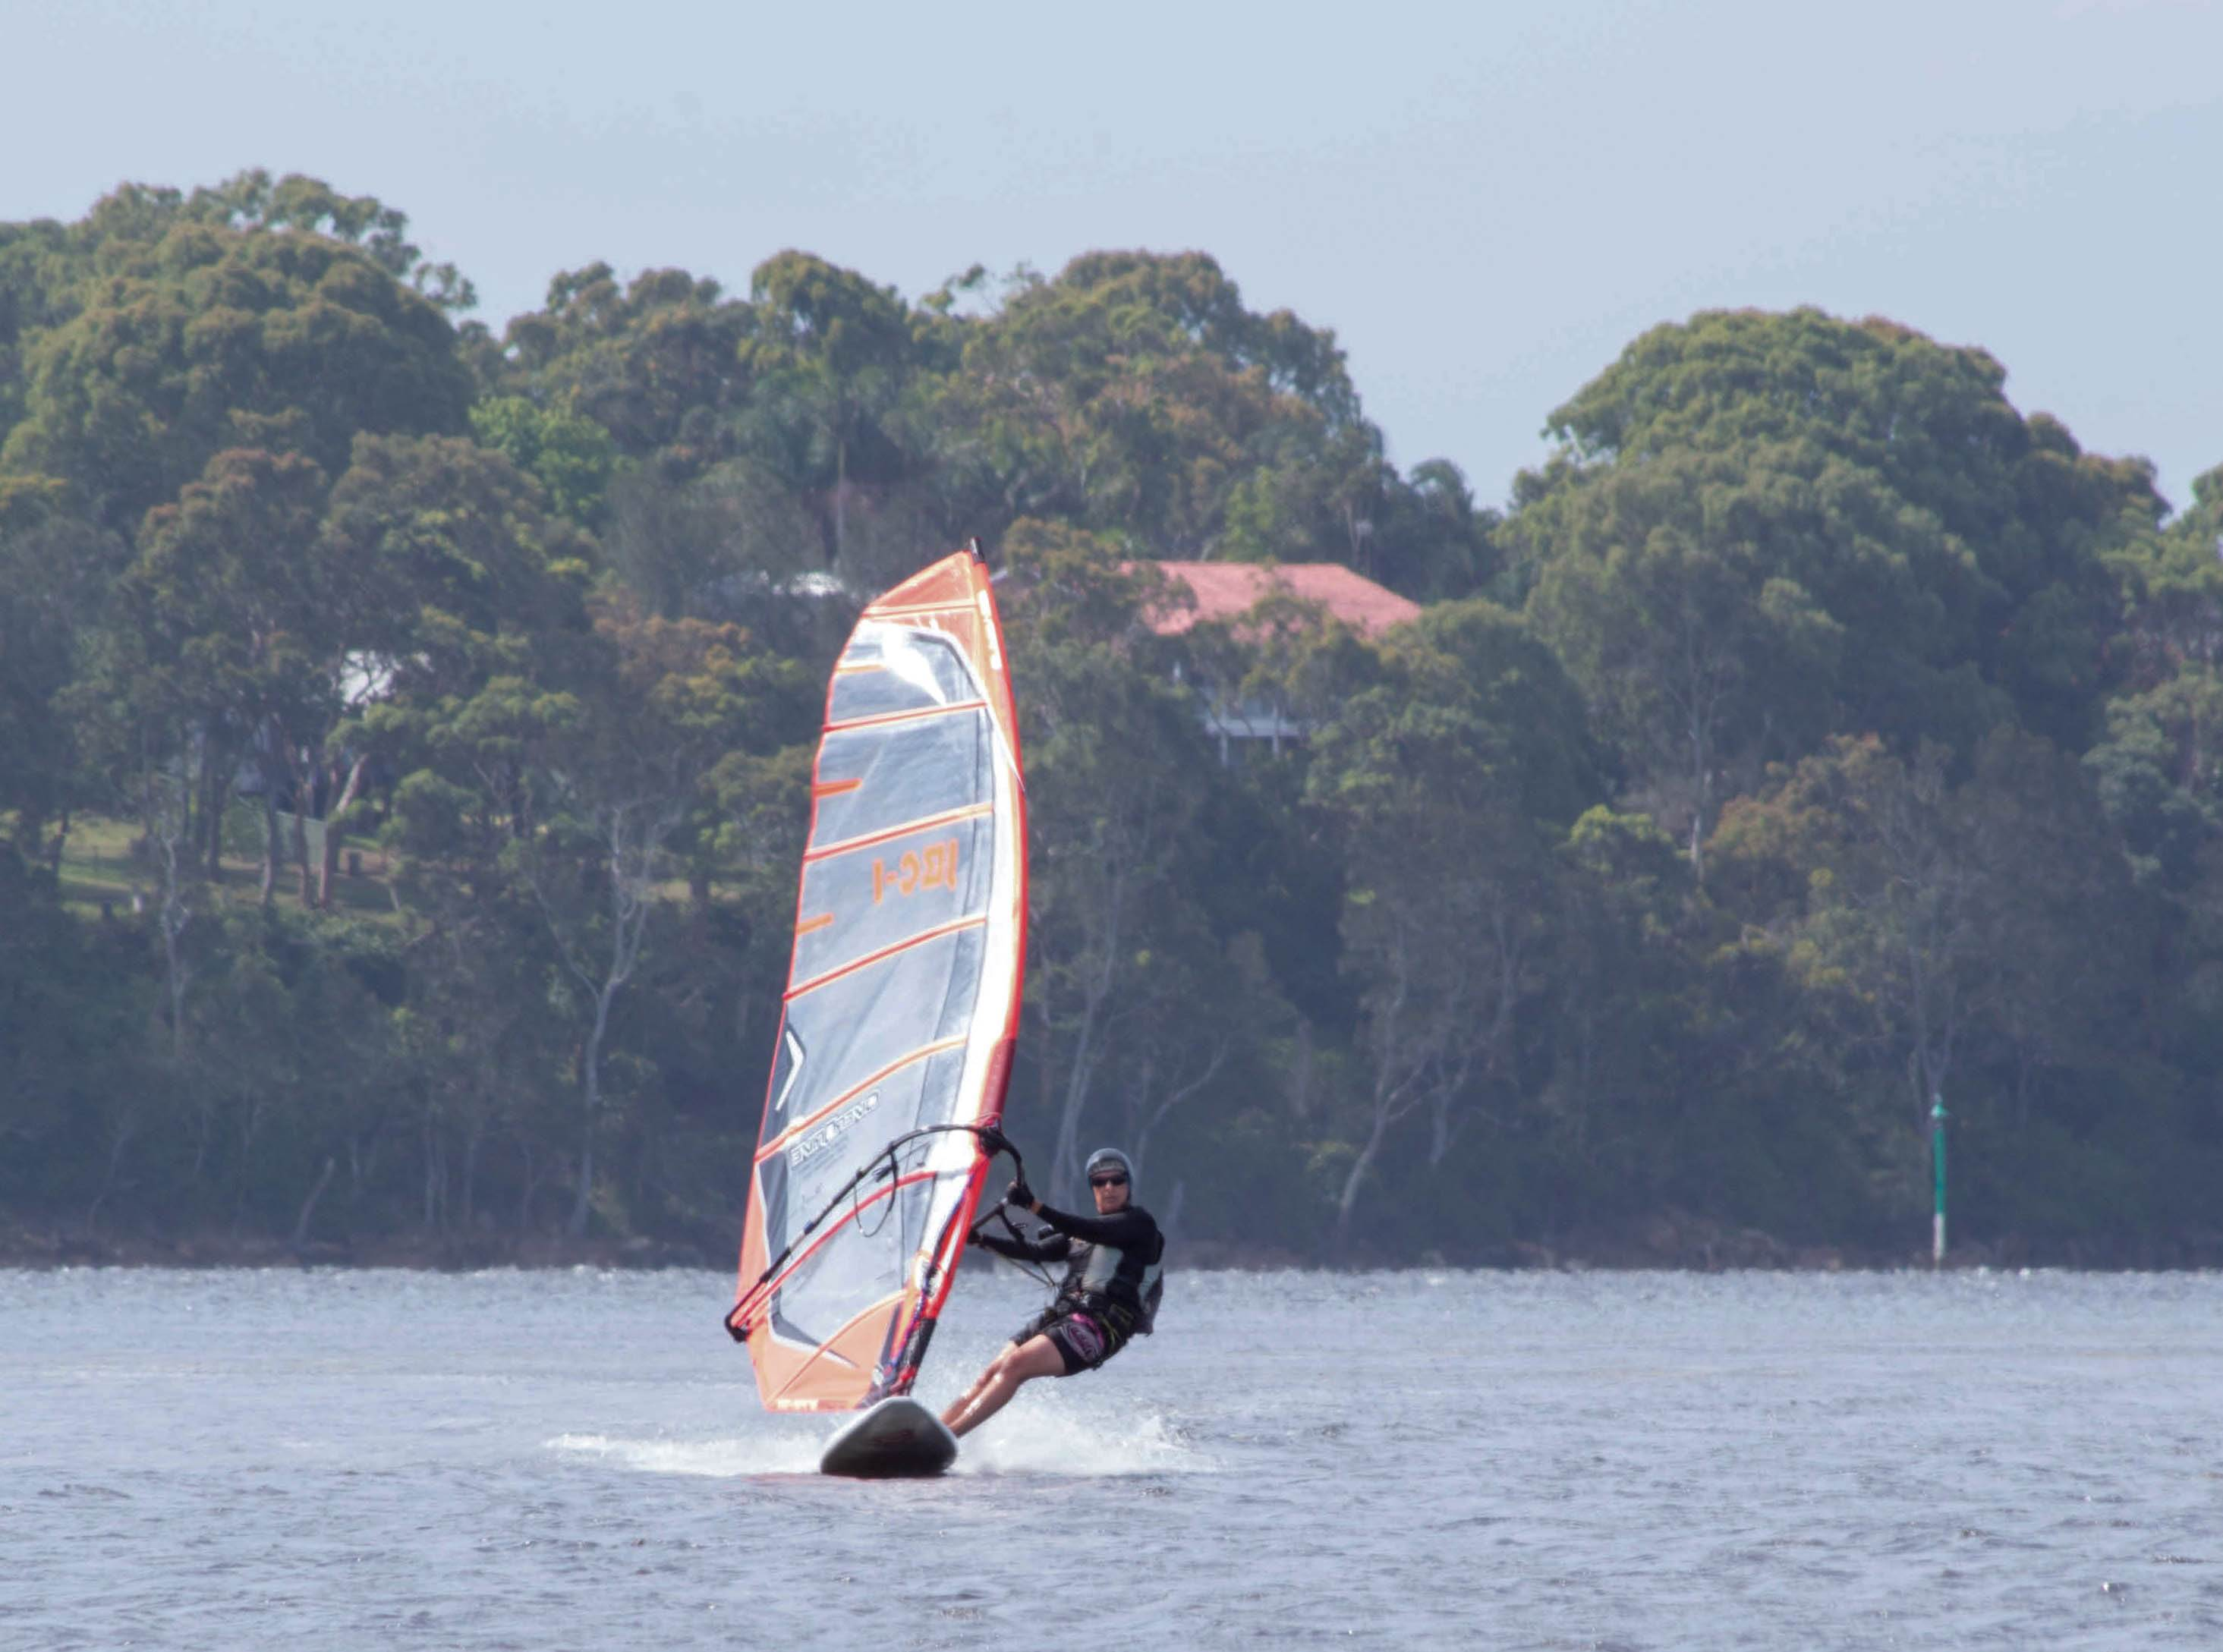 Go pro whizmount pics in use | Windsurfing Forums, page 1